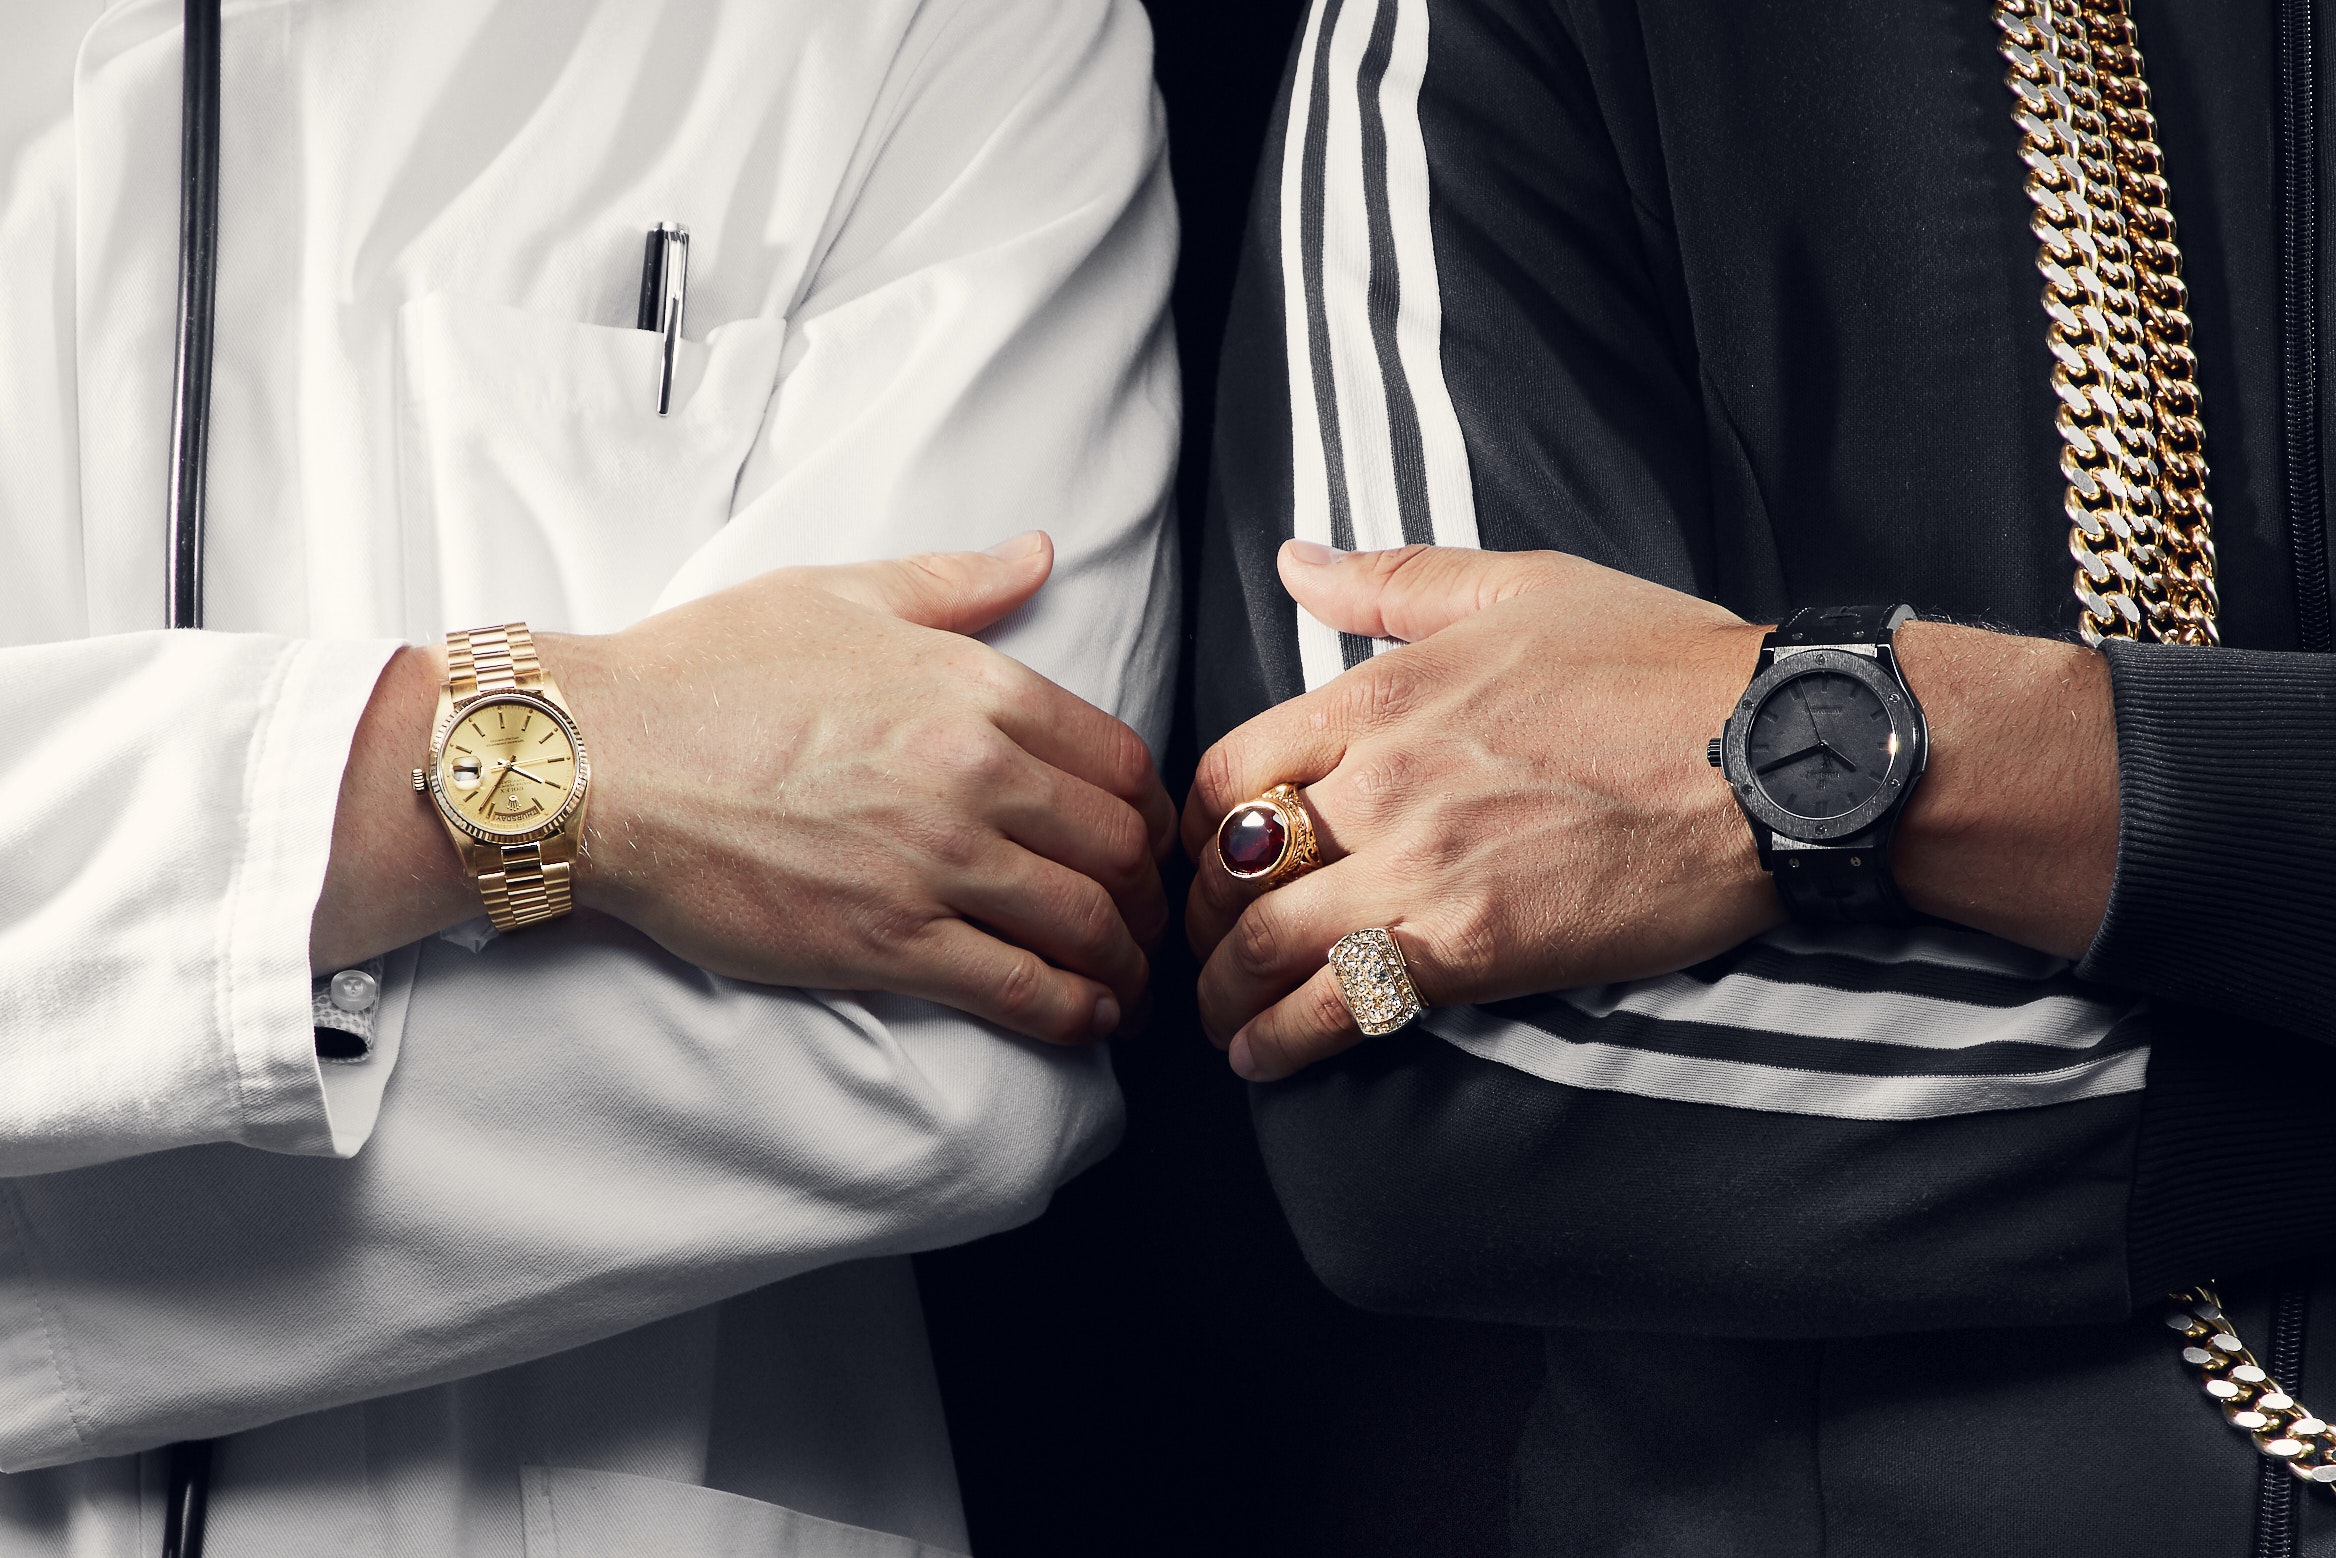 From Jay Z to Jordan Belfort: Here are the 9 types of men who wear luxury watches